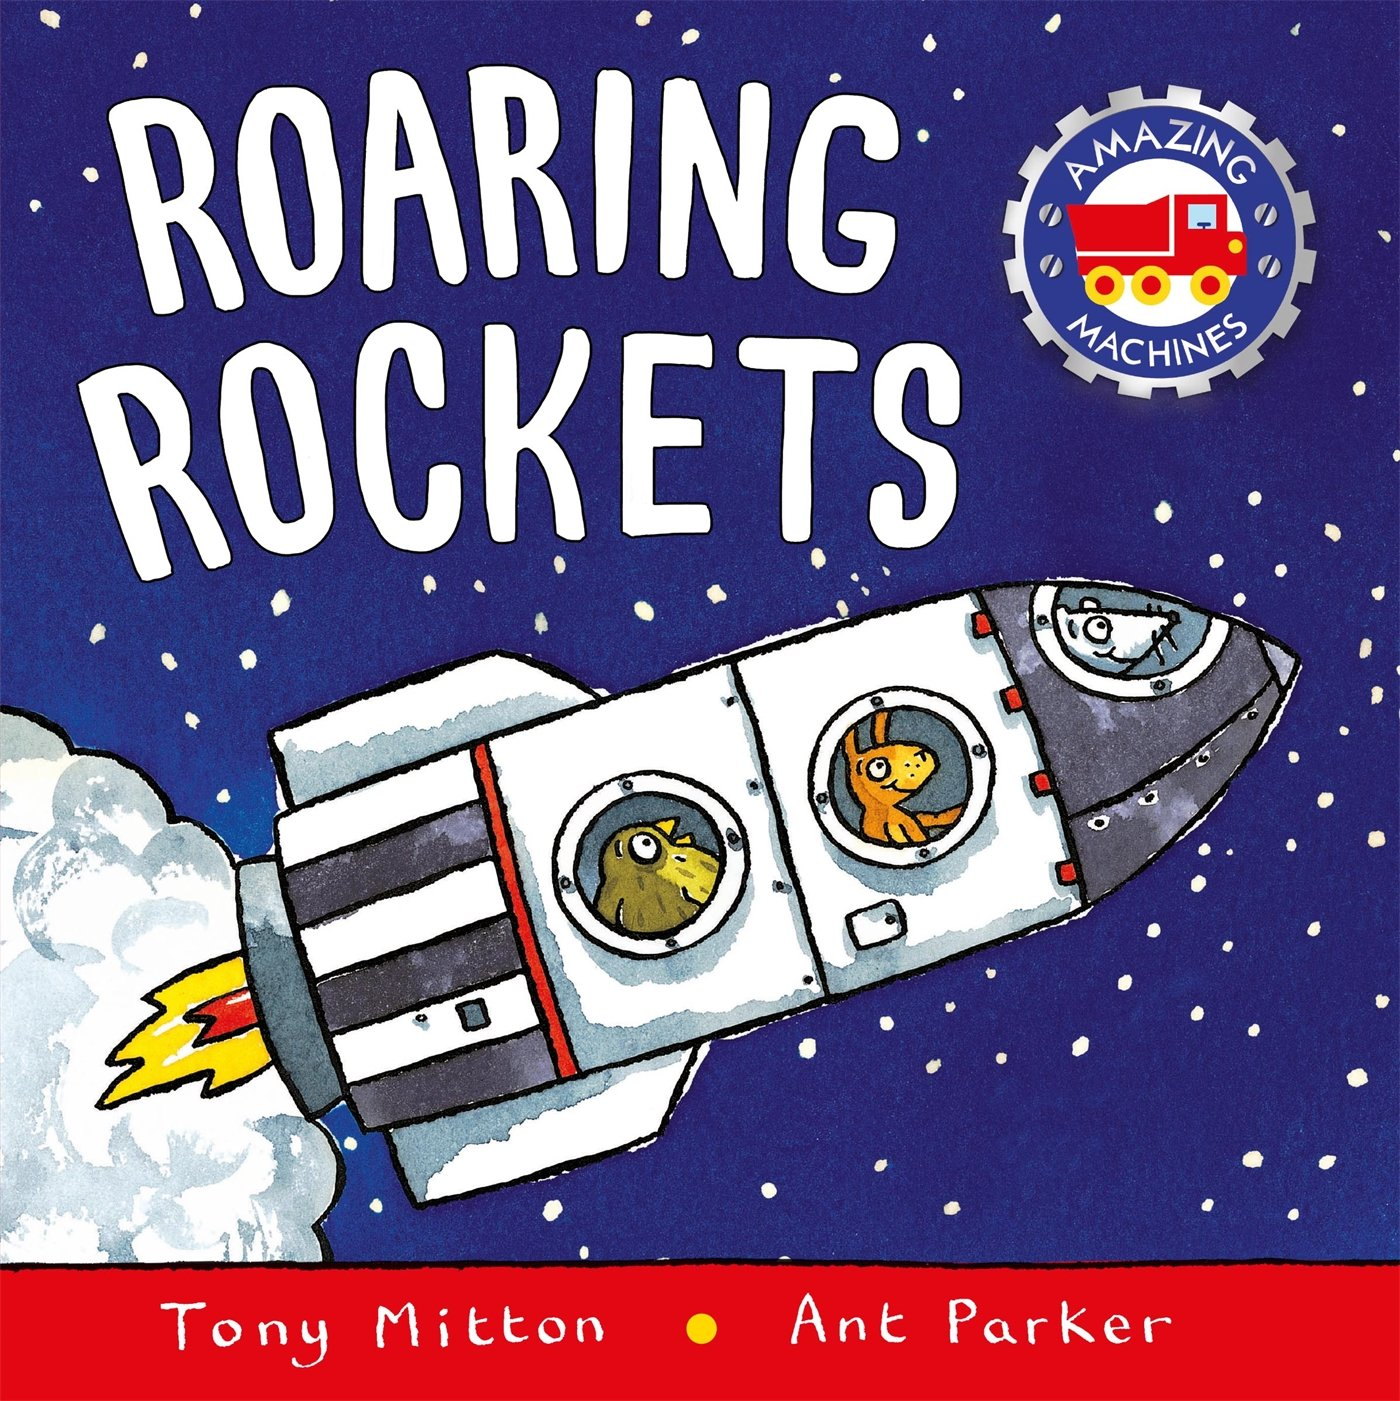 Roaring Rockets (Amazing Machines): Tony Mitton, Ant Parker.